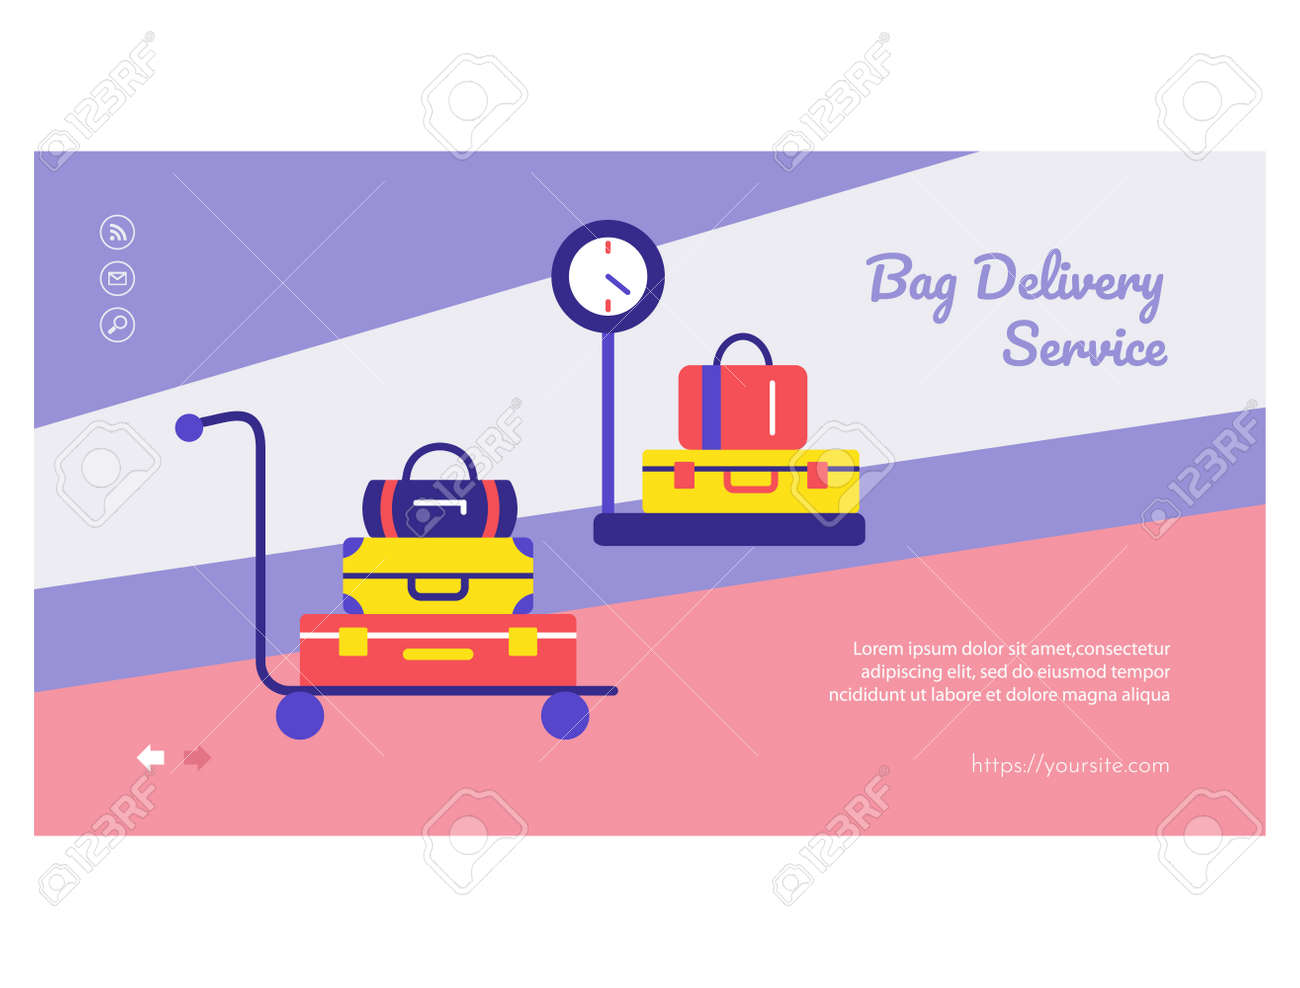 Luggage delivery service mobile app page design - 168346686